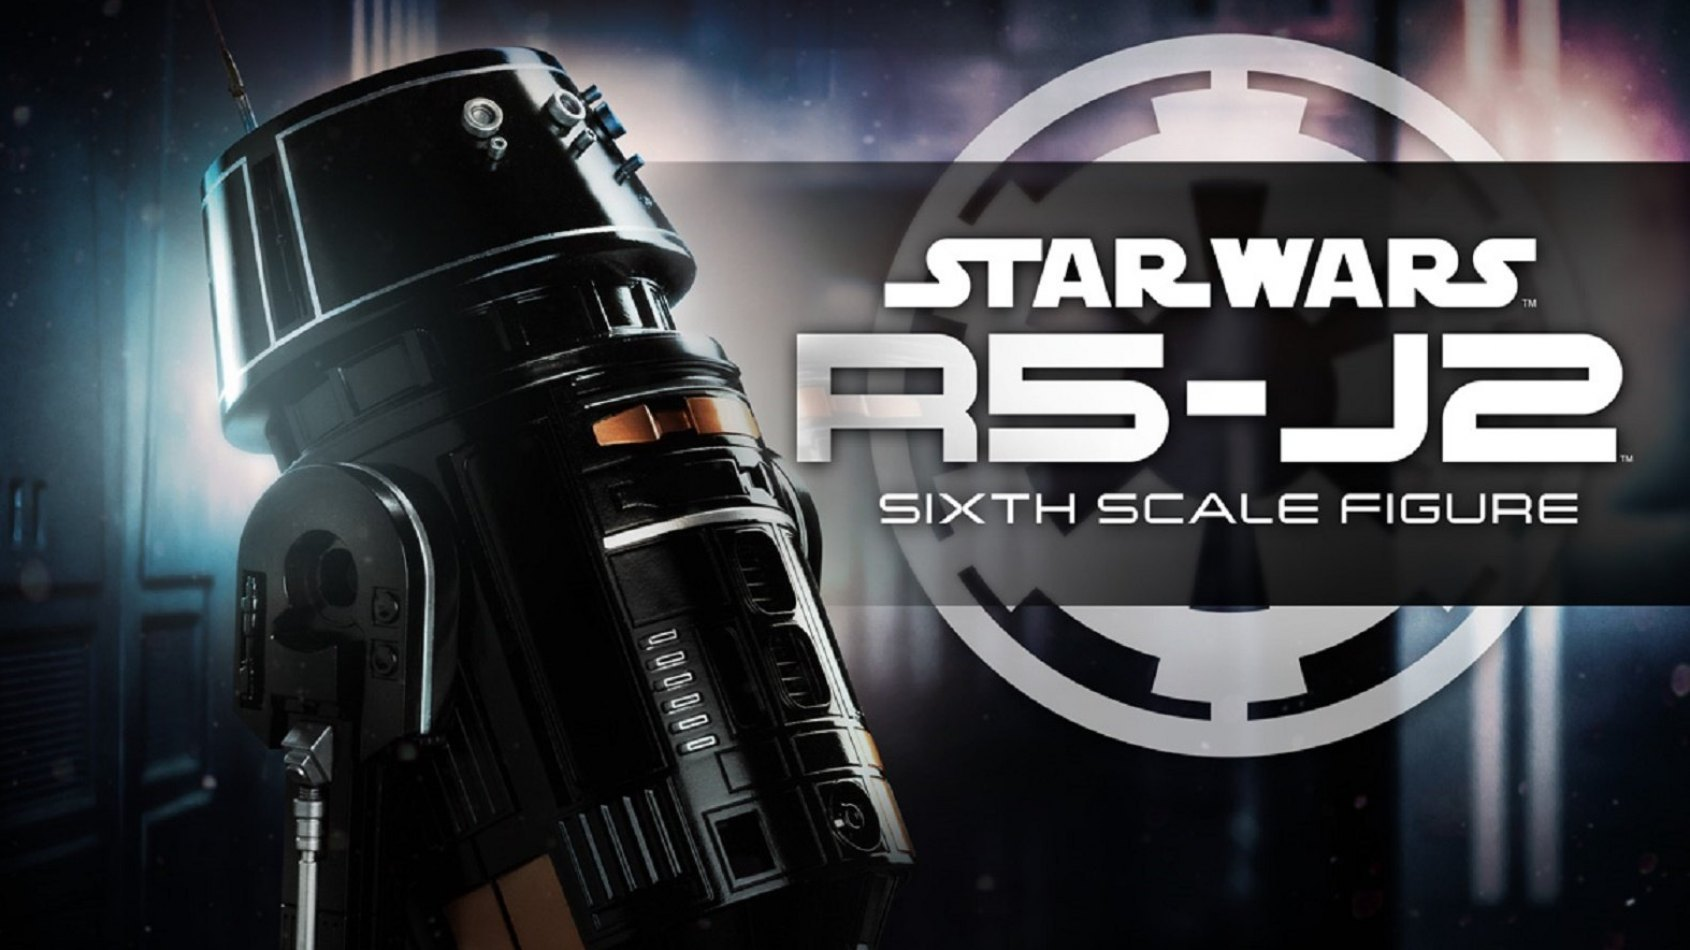 Sideshow Collectibles Sixth Scale R5-J2 Imperial Astromech Droid